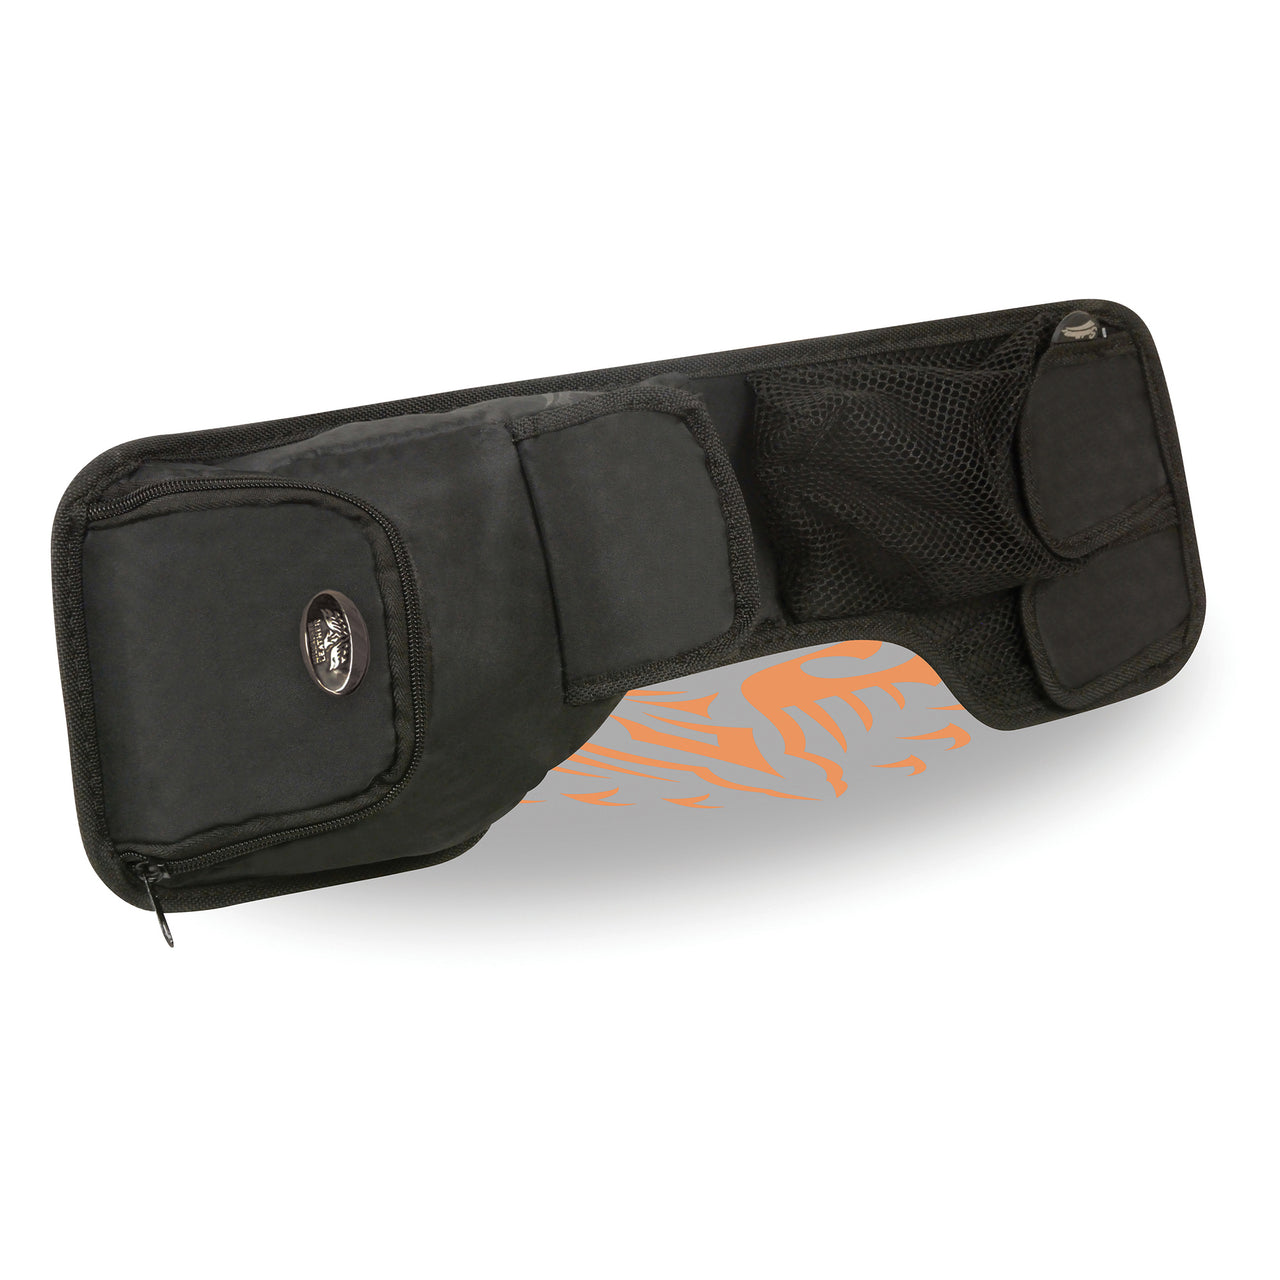 Textile Saddle Bag Organizer Kit (30X6.5) - HighwayLeather